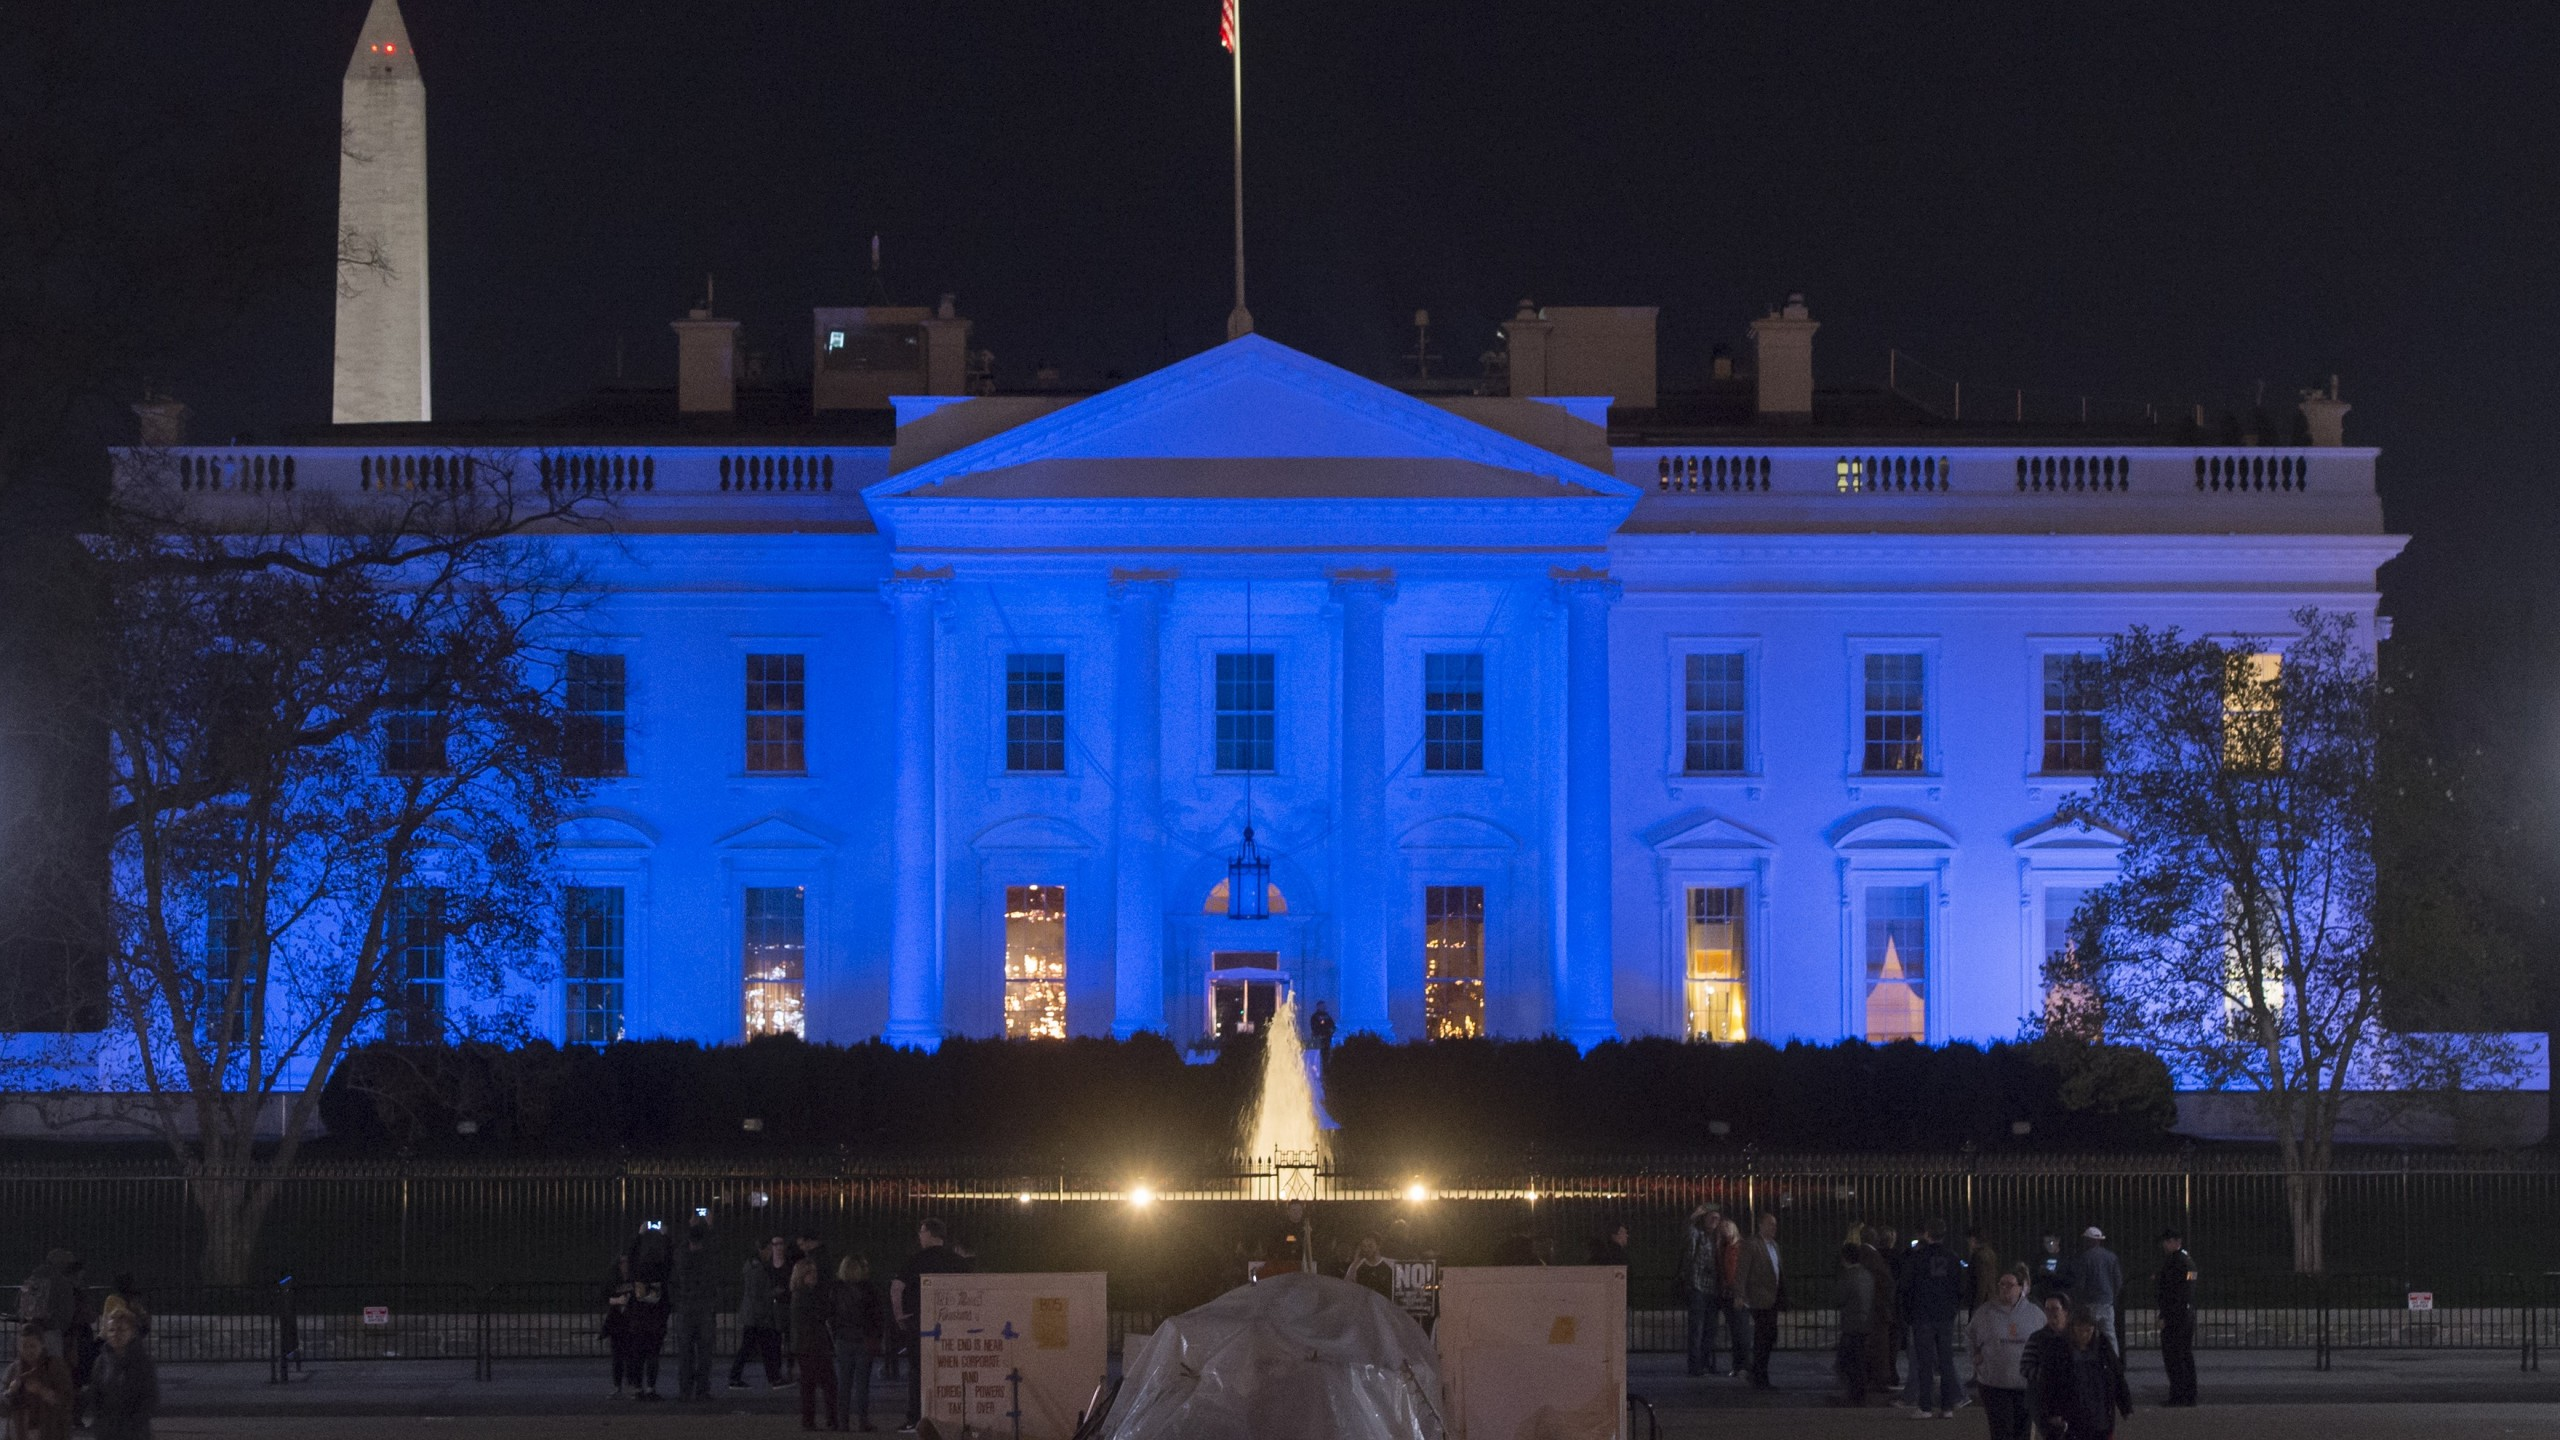 The White House is lit in blue in honor of World Autism Awareness Day in Washington, April 2, 2017. (Credit: SAUL LOEB/AFP/Getty Images)